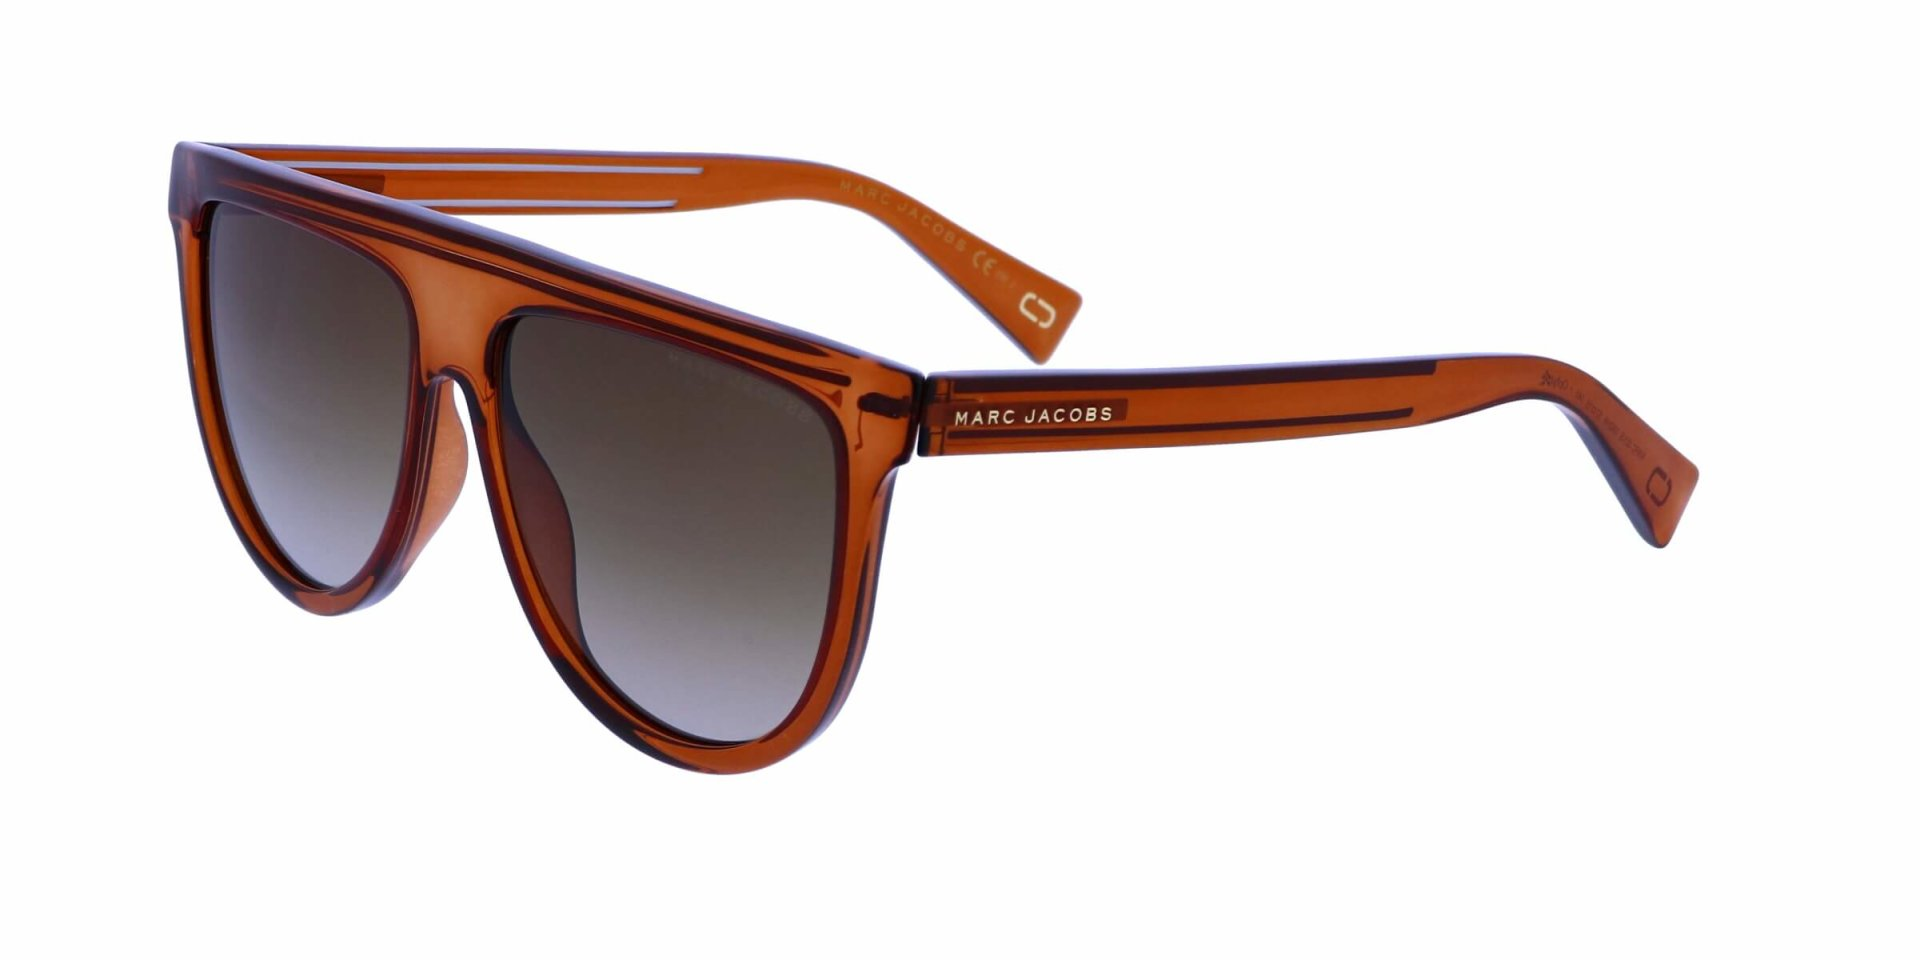 6ccec0cb2ba5 Sunglasses MARC JACOBS | Opticlasa